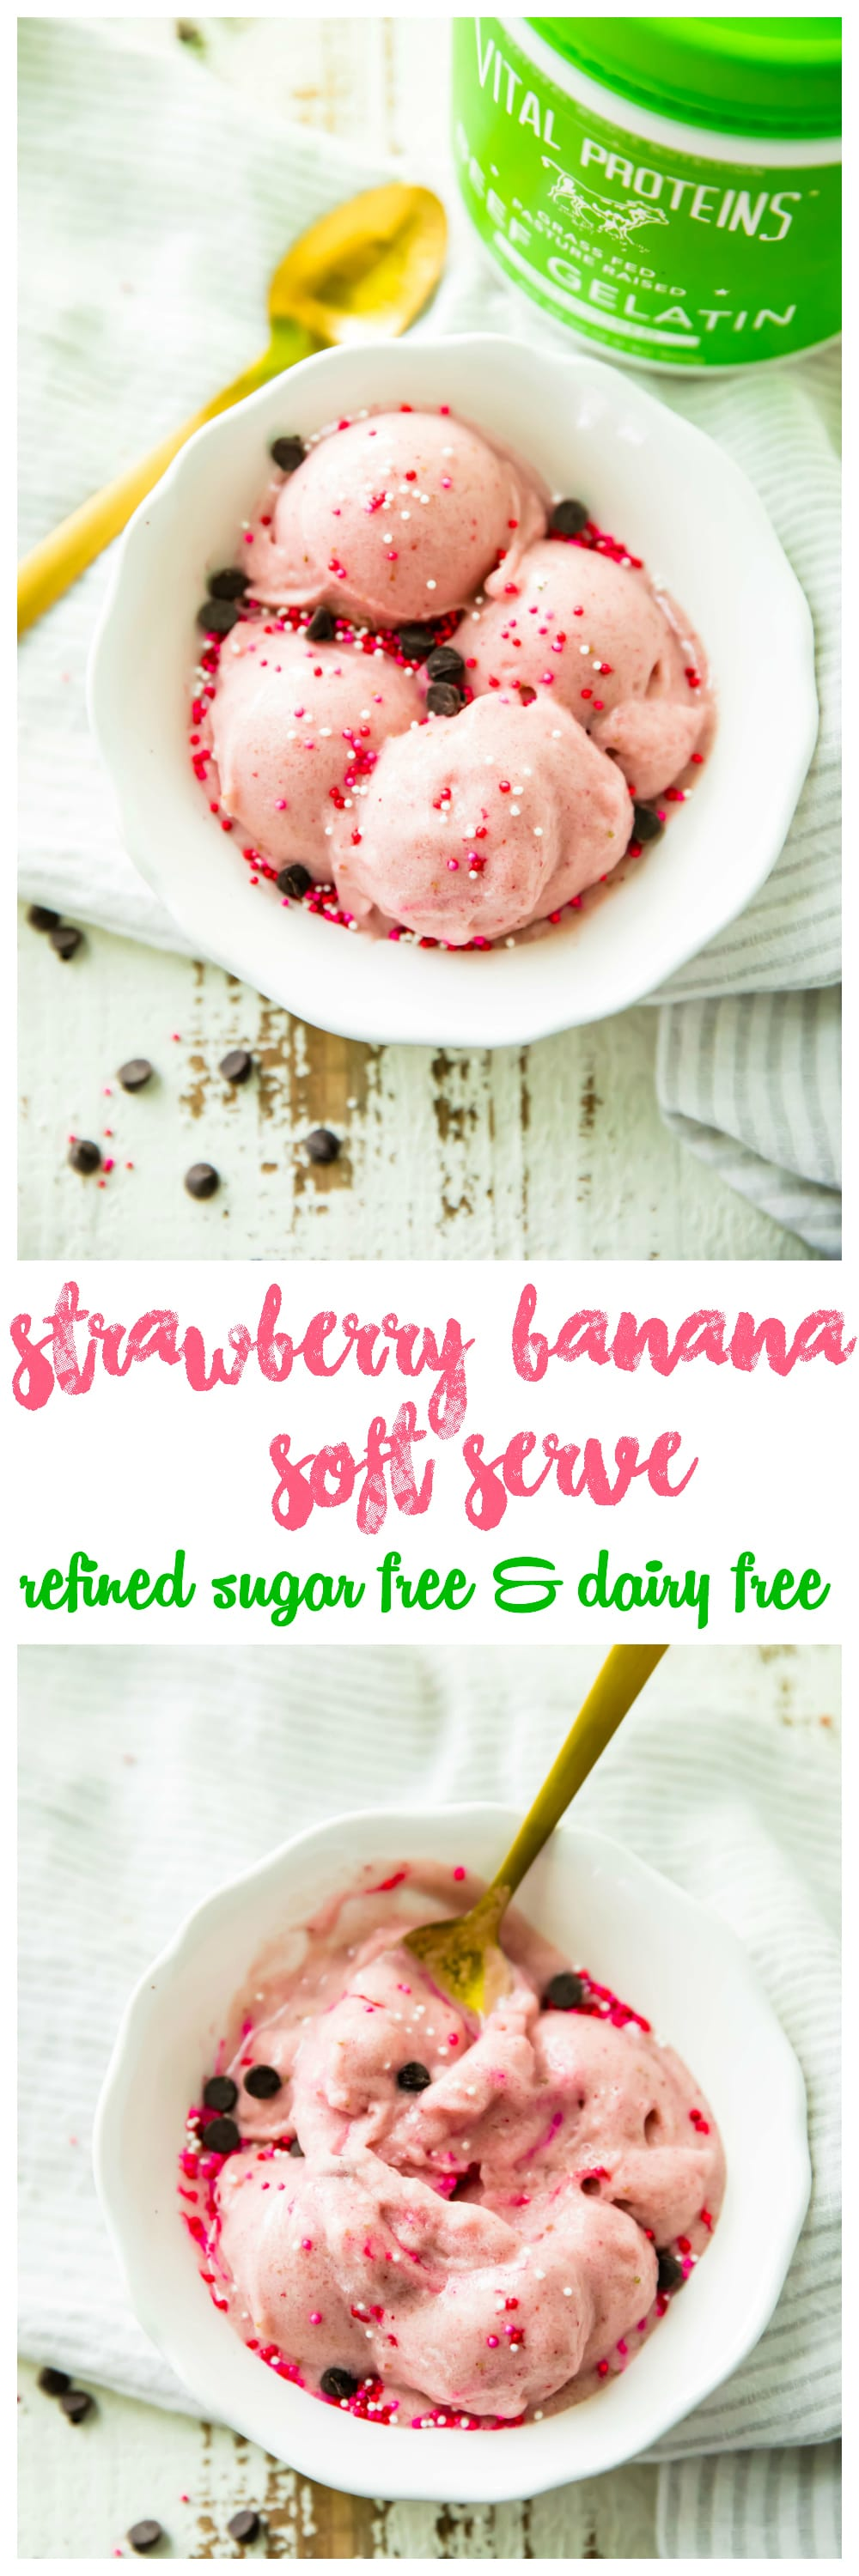 Strawberry Banana Soft Serve ready in minutes, in the comfort of your own home, and all for under 100 calories per serving. Did I also mention there is no added sugar, it's high in protein, and 100 percent delicious, creamy, and nutritious? Yep, it's true! Be prepared to enjoy ice cream in a whole new way!